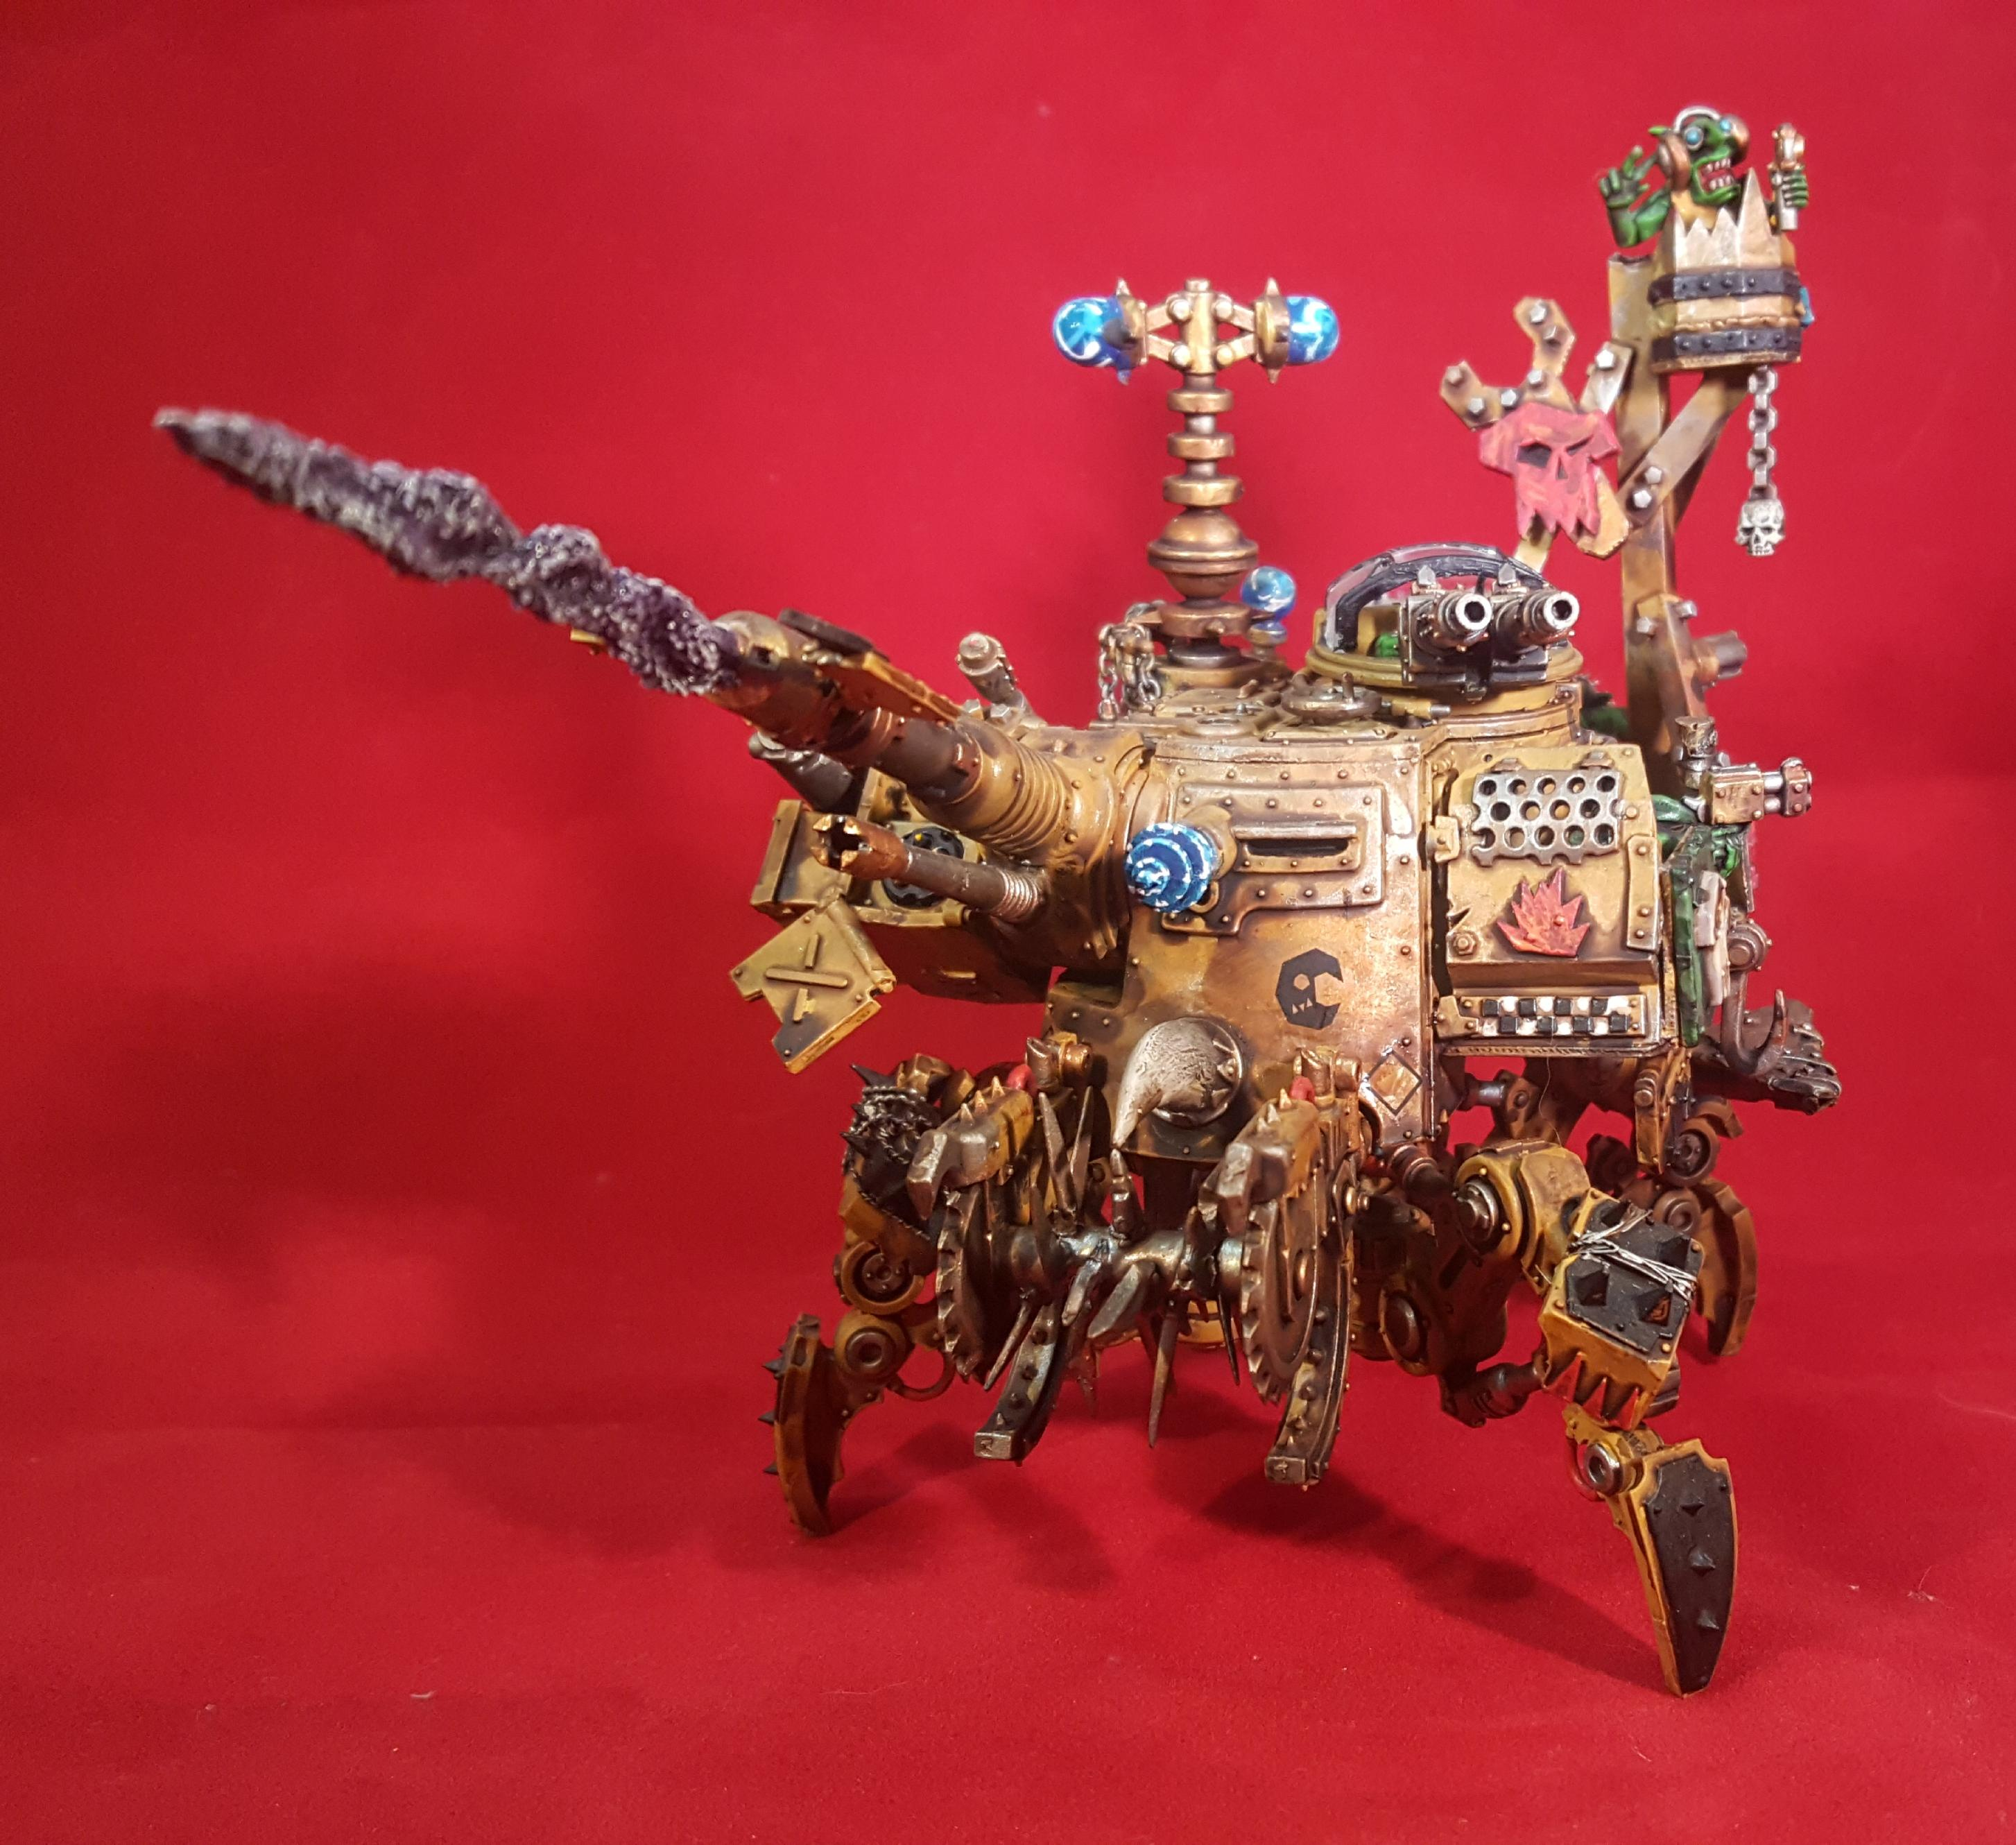 Dreadnought, Looted, Mechanicum, Mob, Orks, Wagon, Walkers